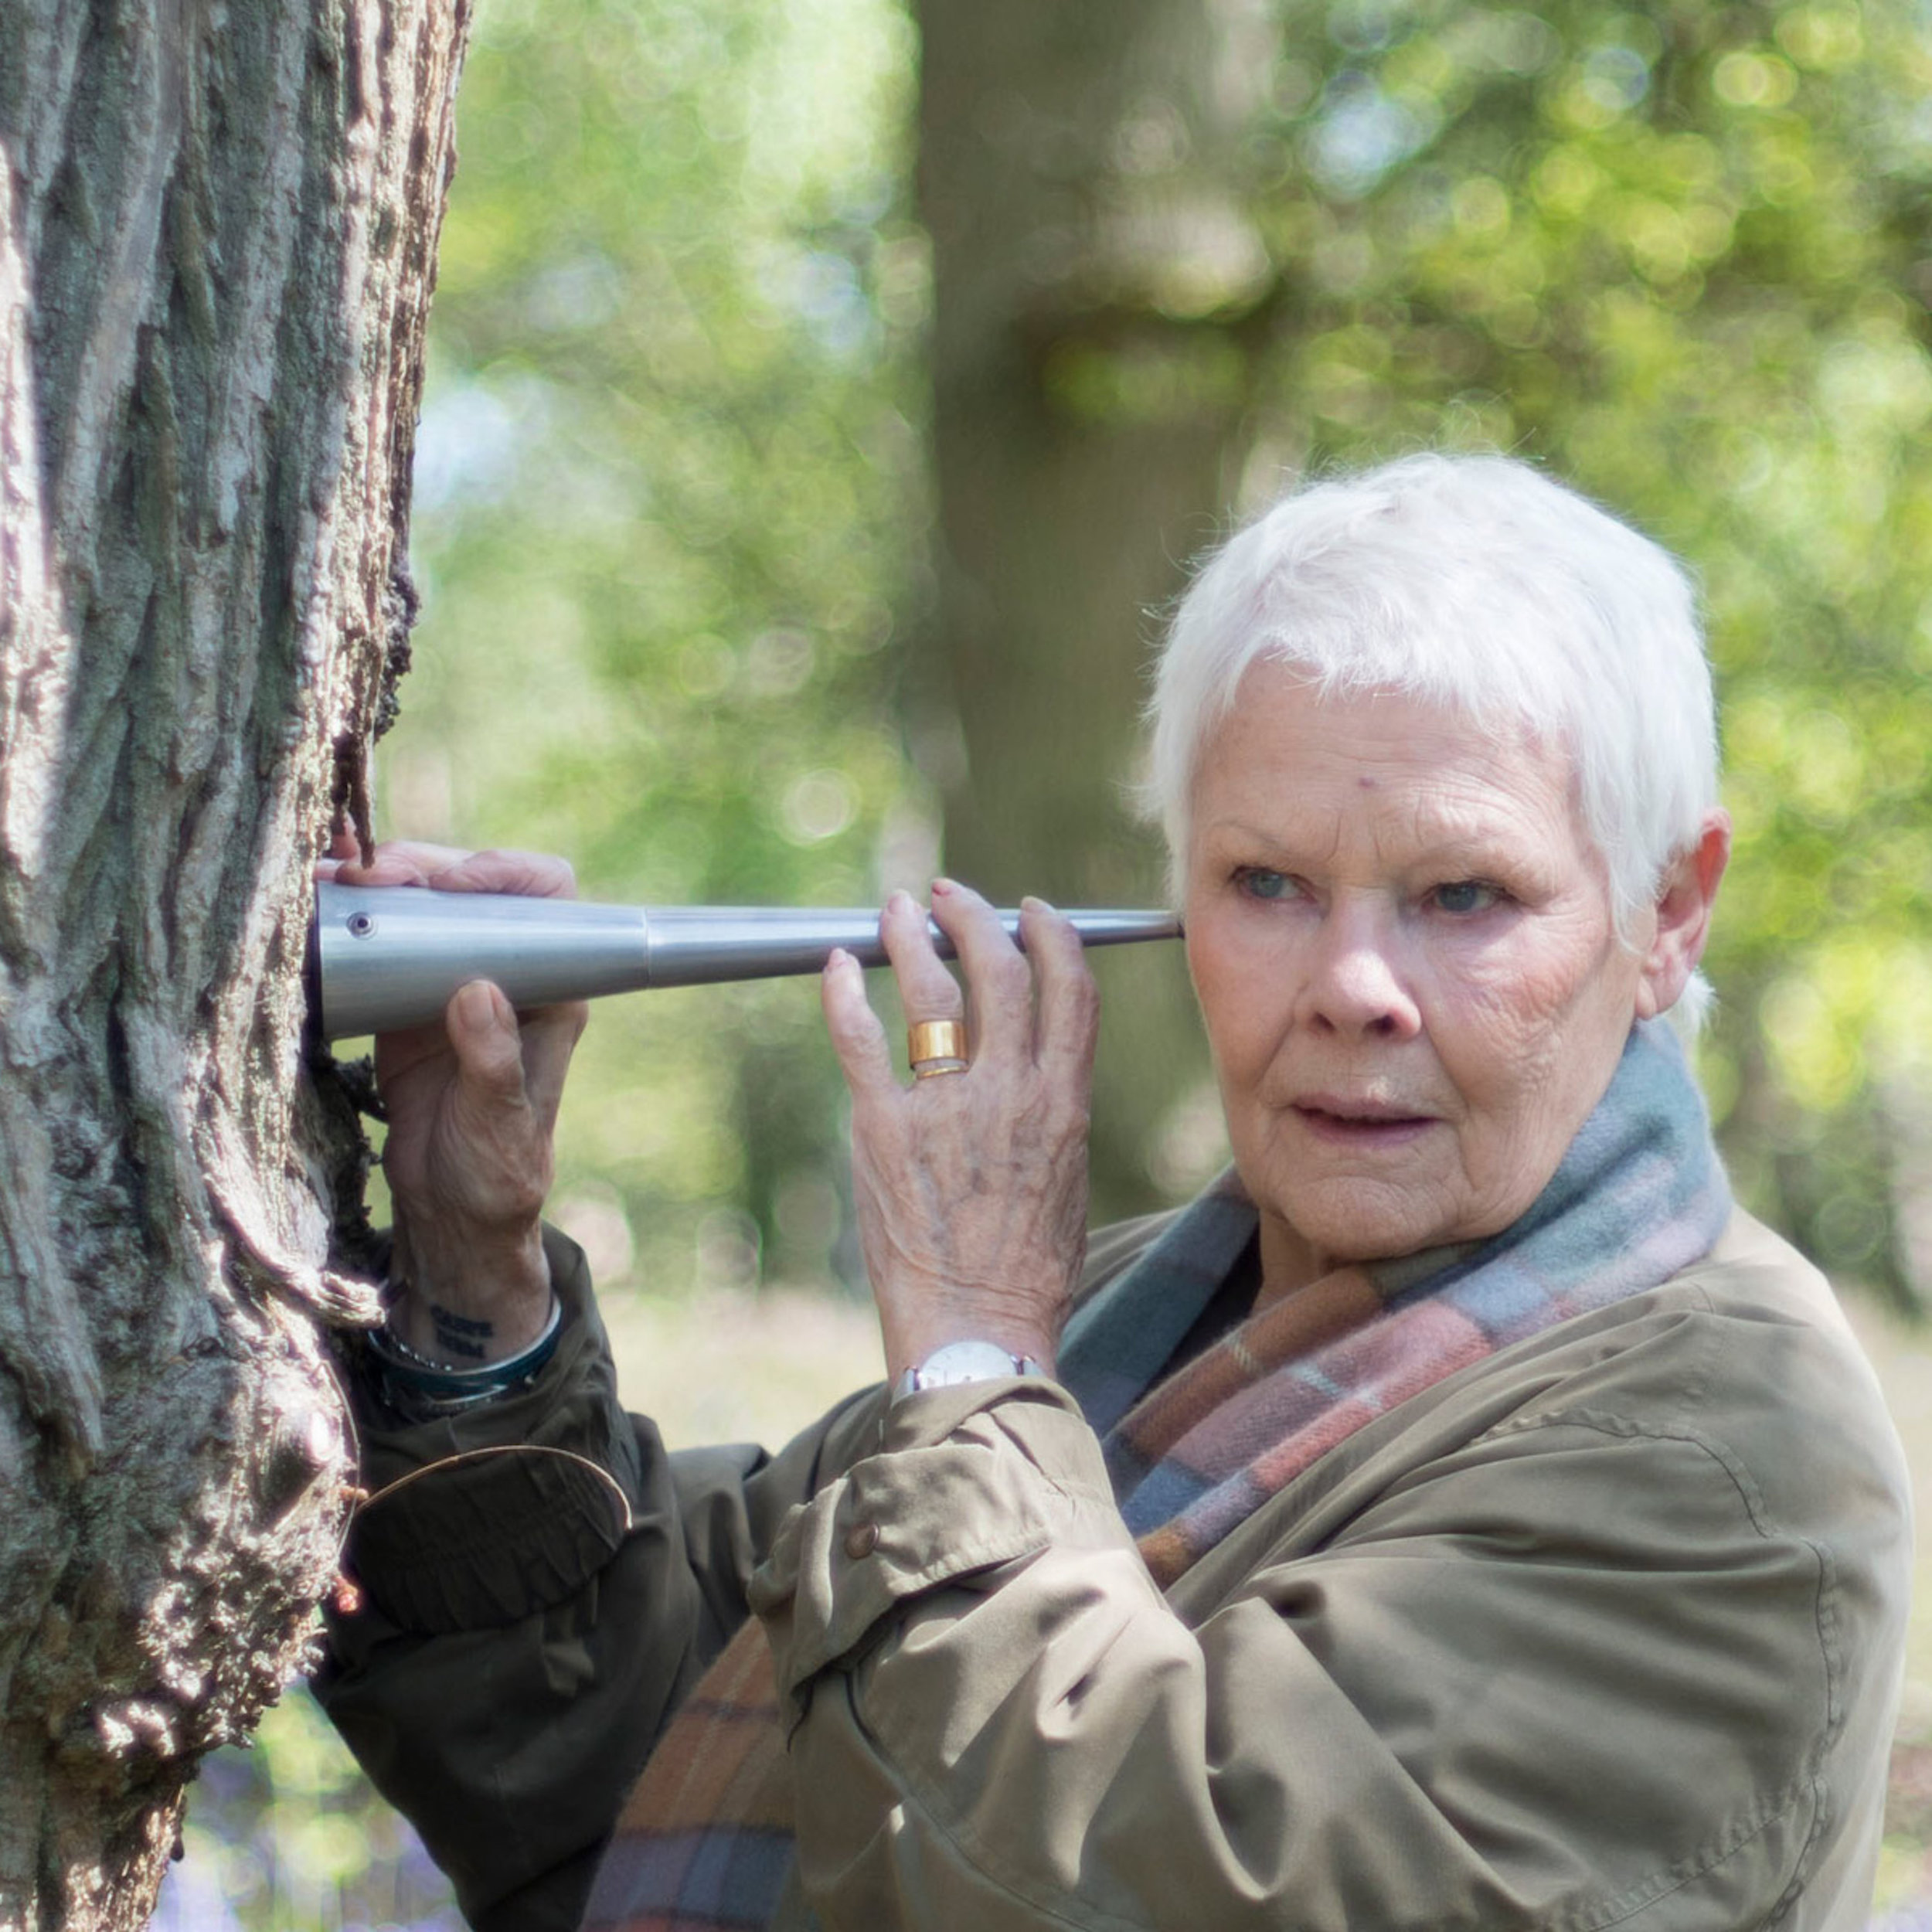 Hero-Landscape-14878828-high_res-judi-dench-my-passion-for-trees copy.jpg